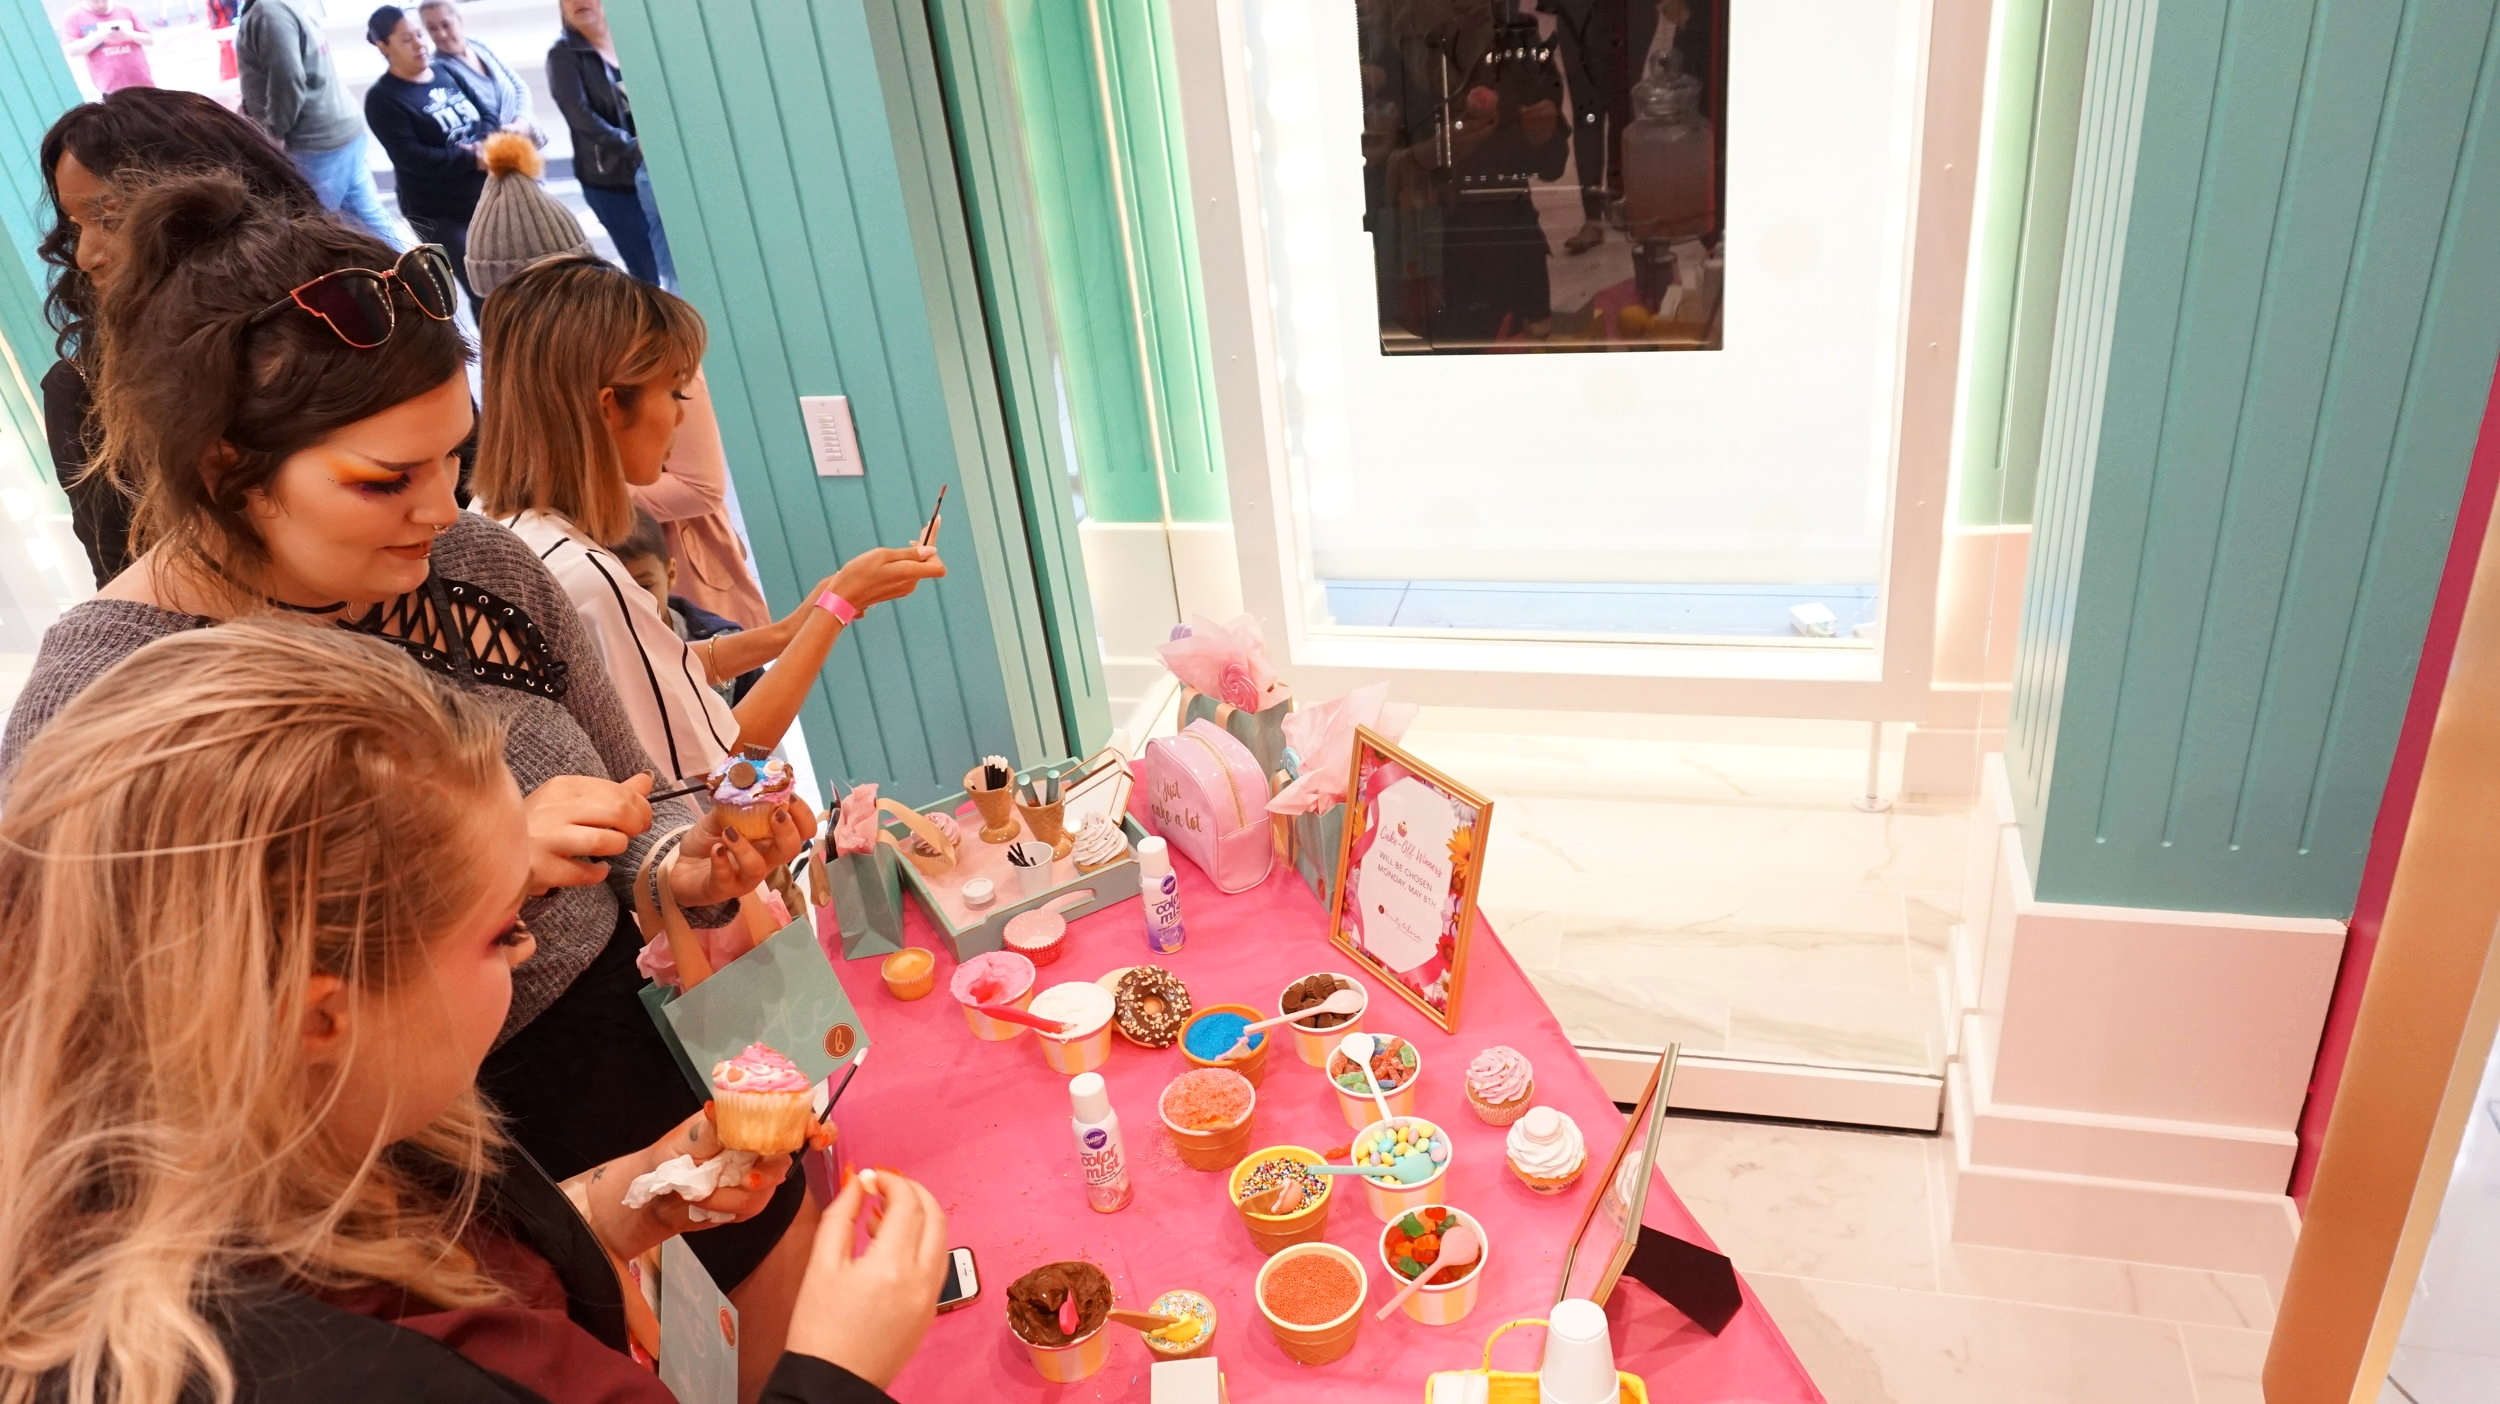 There was a Cupcake station where we tested out the power of the Lip whips!!! Beauty Bakerie Lip Whips, which is their liquid lipsticks are known for all day staying power!! You can eat and not have lipstick all over your face! Amazing right!!